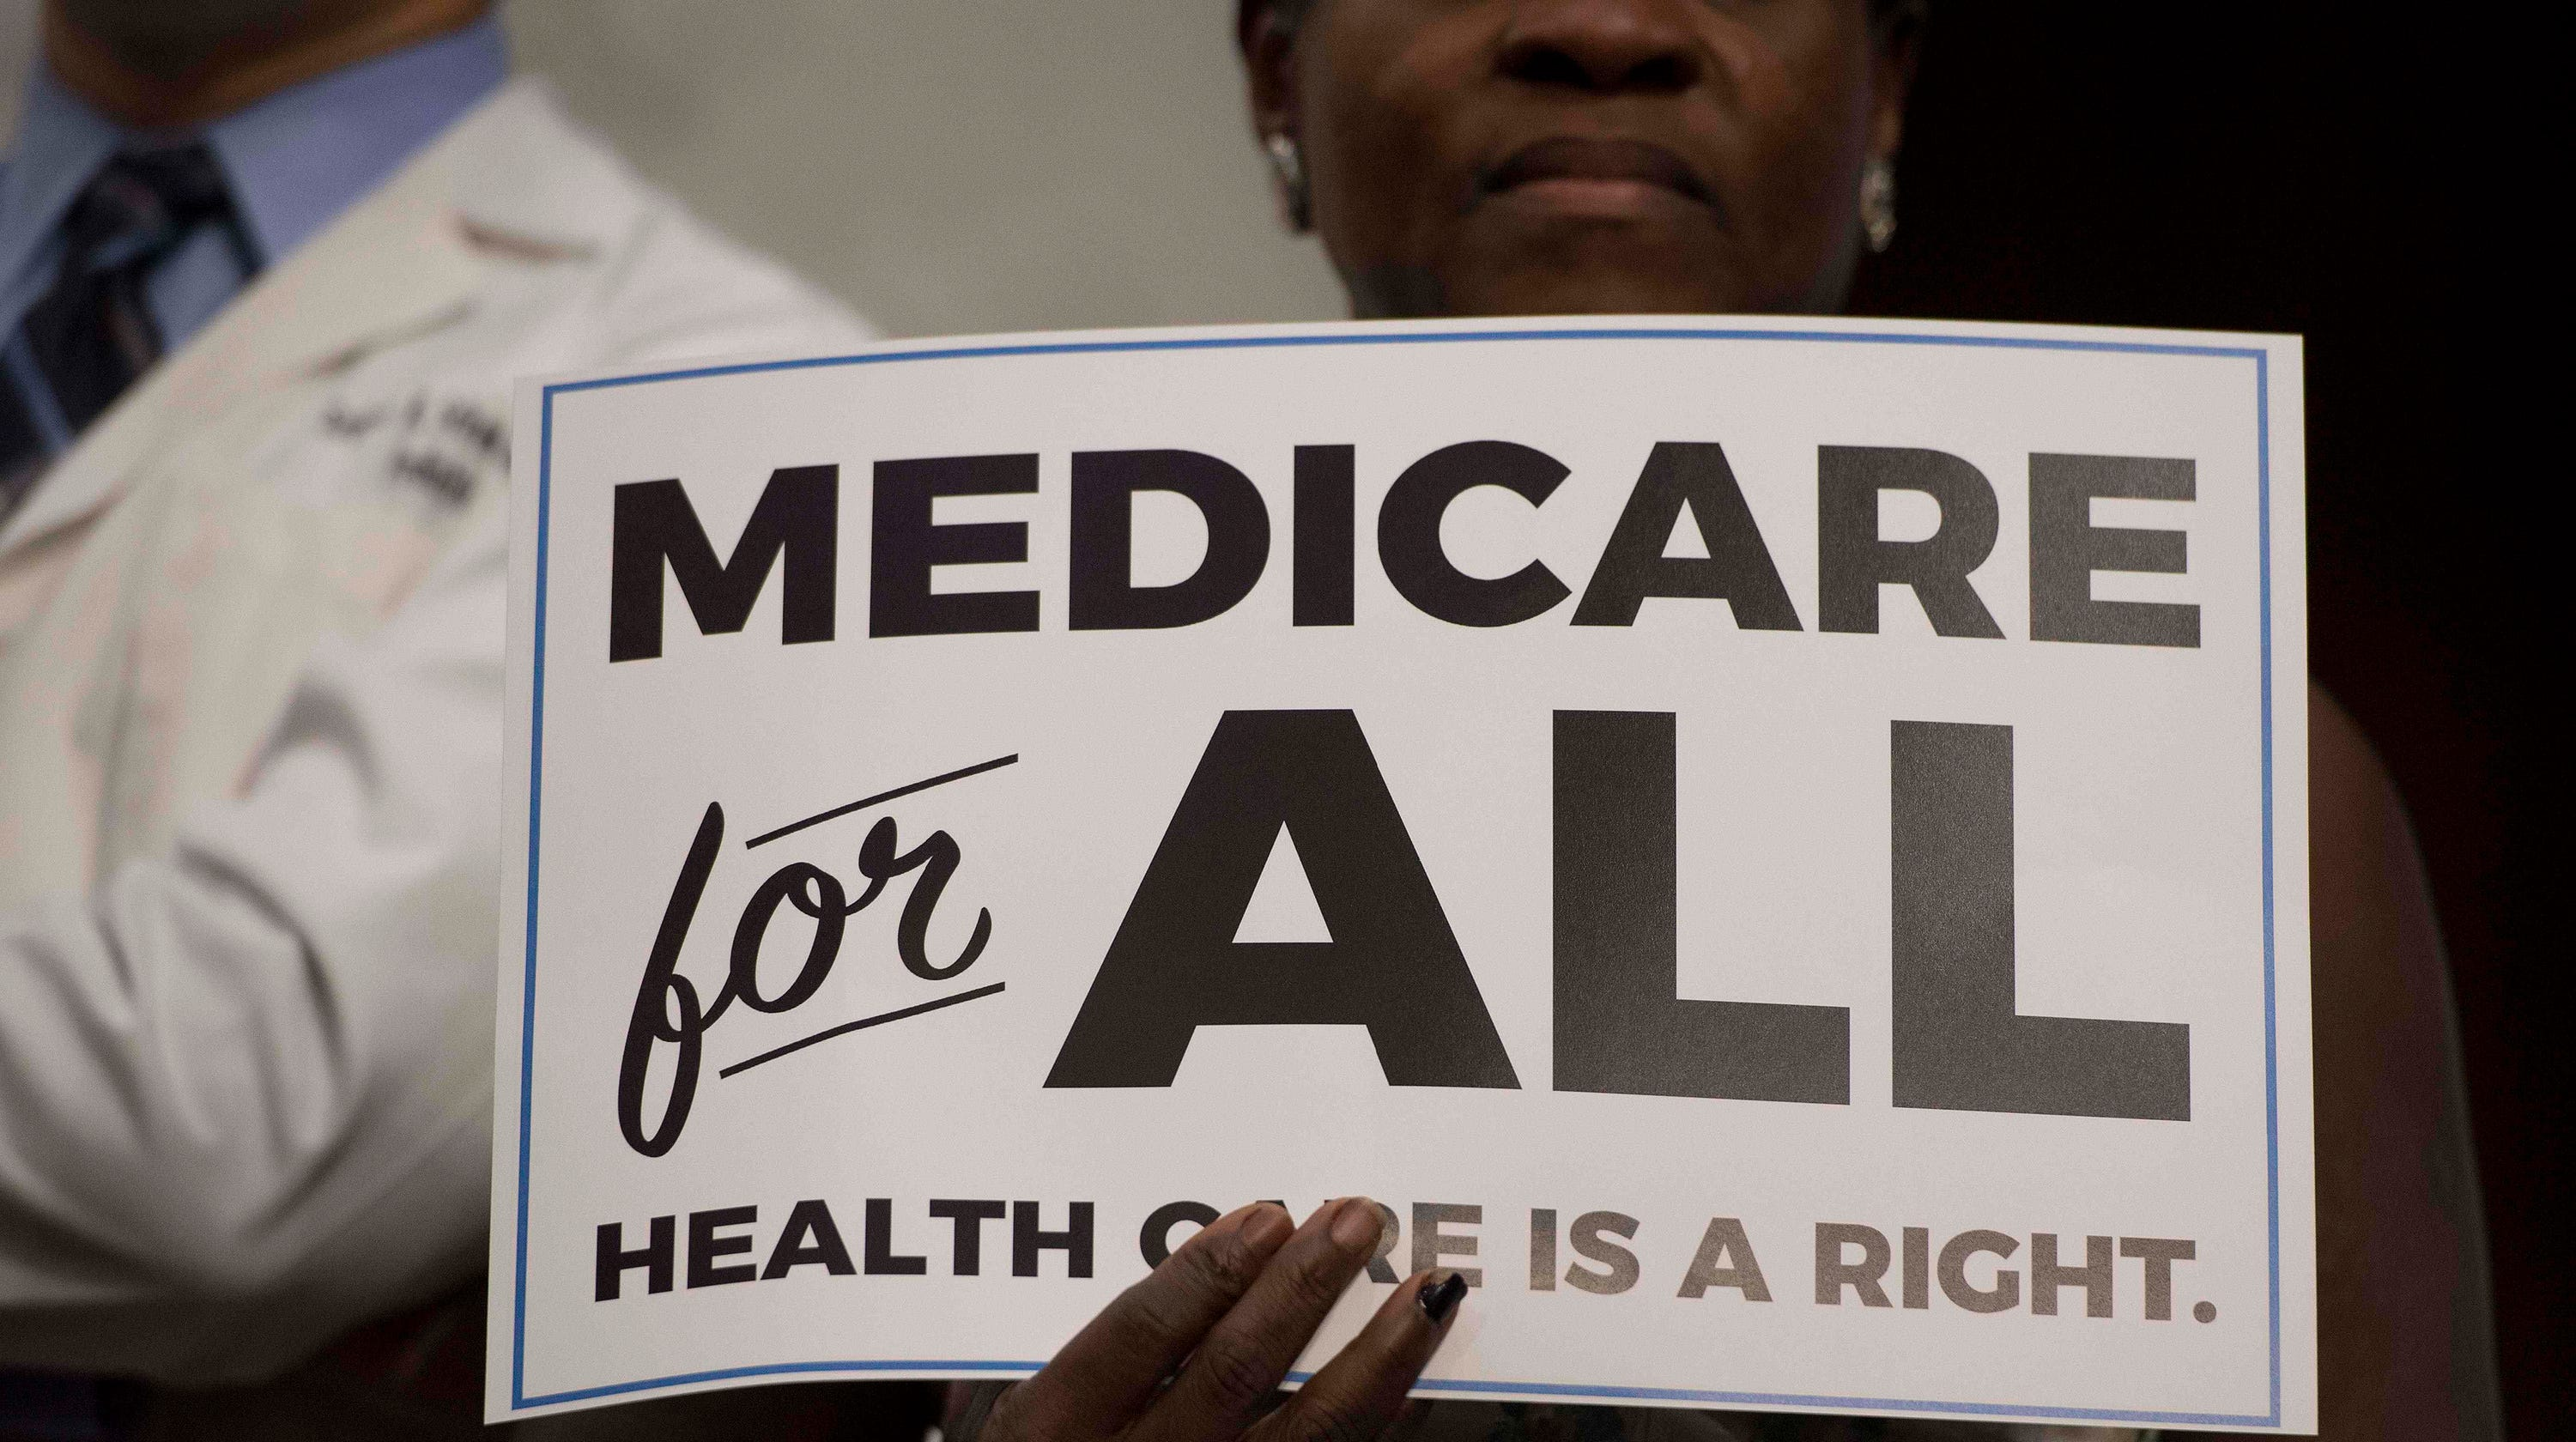 Democrats, don't waste time on health tweaks. Pass Medicare for All.